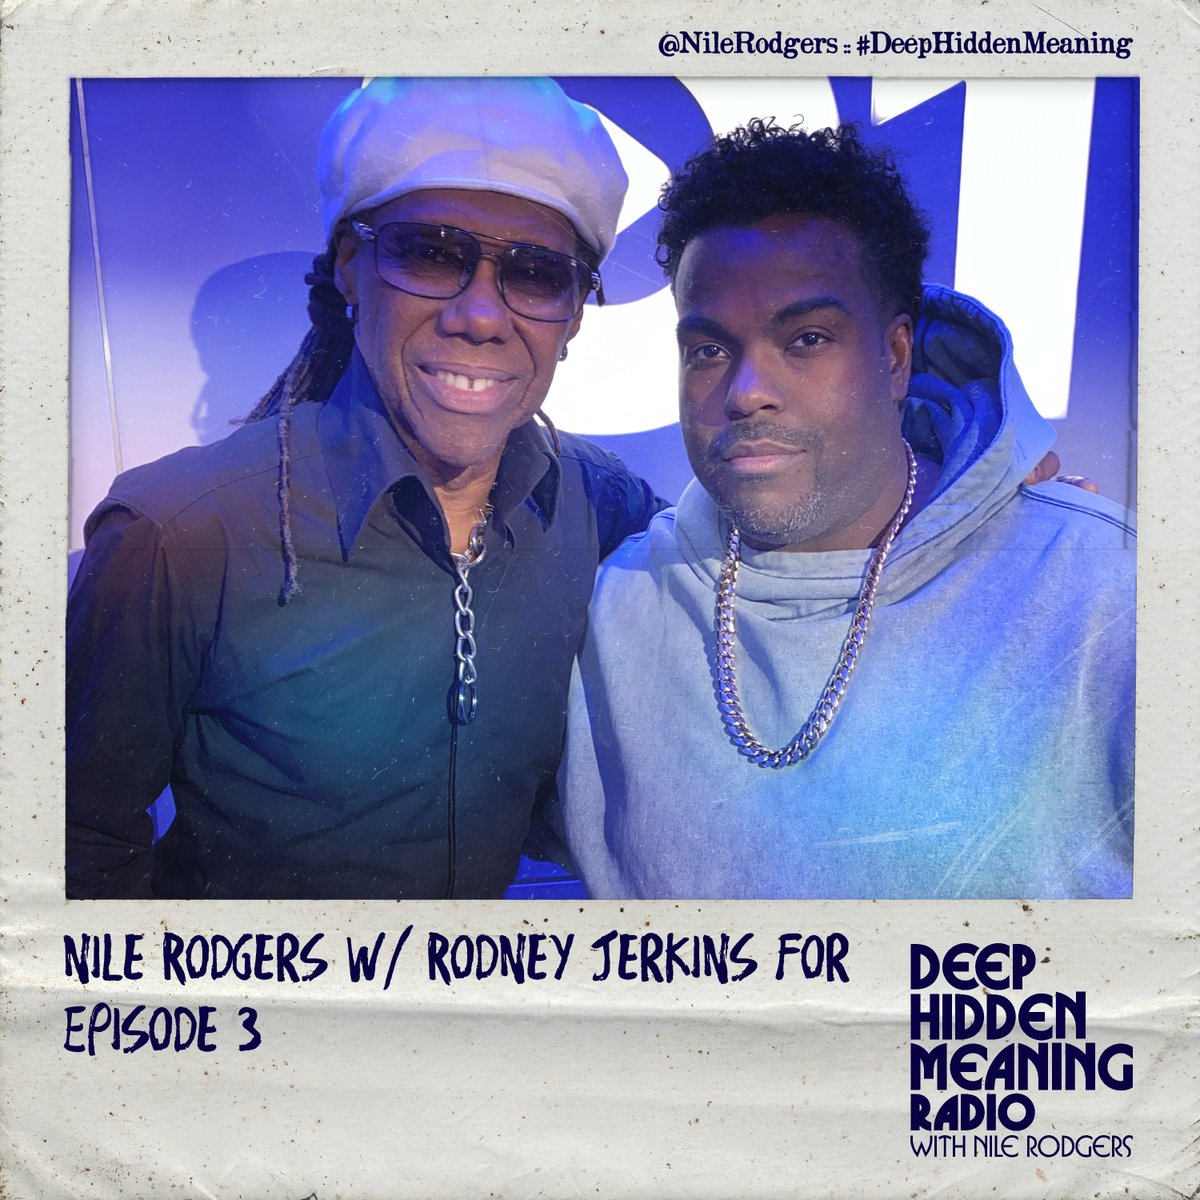 "Replying to @nilerodgers ""Did you miss my latest episode of #DeepHiddenMeaning on @AppleMusic where I talk to @JackAntonoff, @TonesAndIMusic & @RodneyJerkins ???  Well, check out the next airing THIS SATURDAY - Oct 31 10am LDN / 6am NYC / 3am LA / 9pm Sydney … """